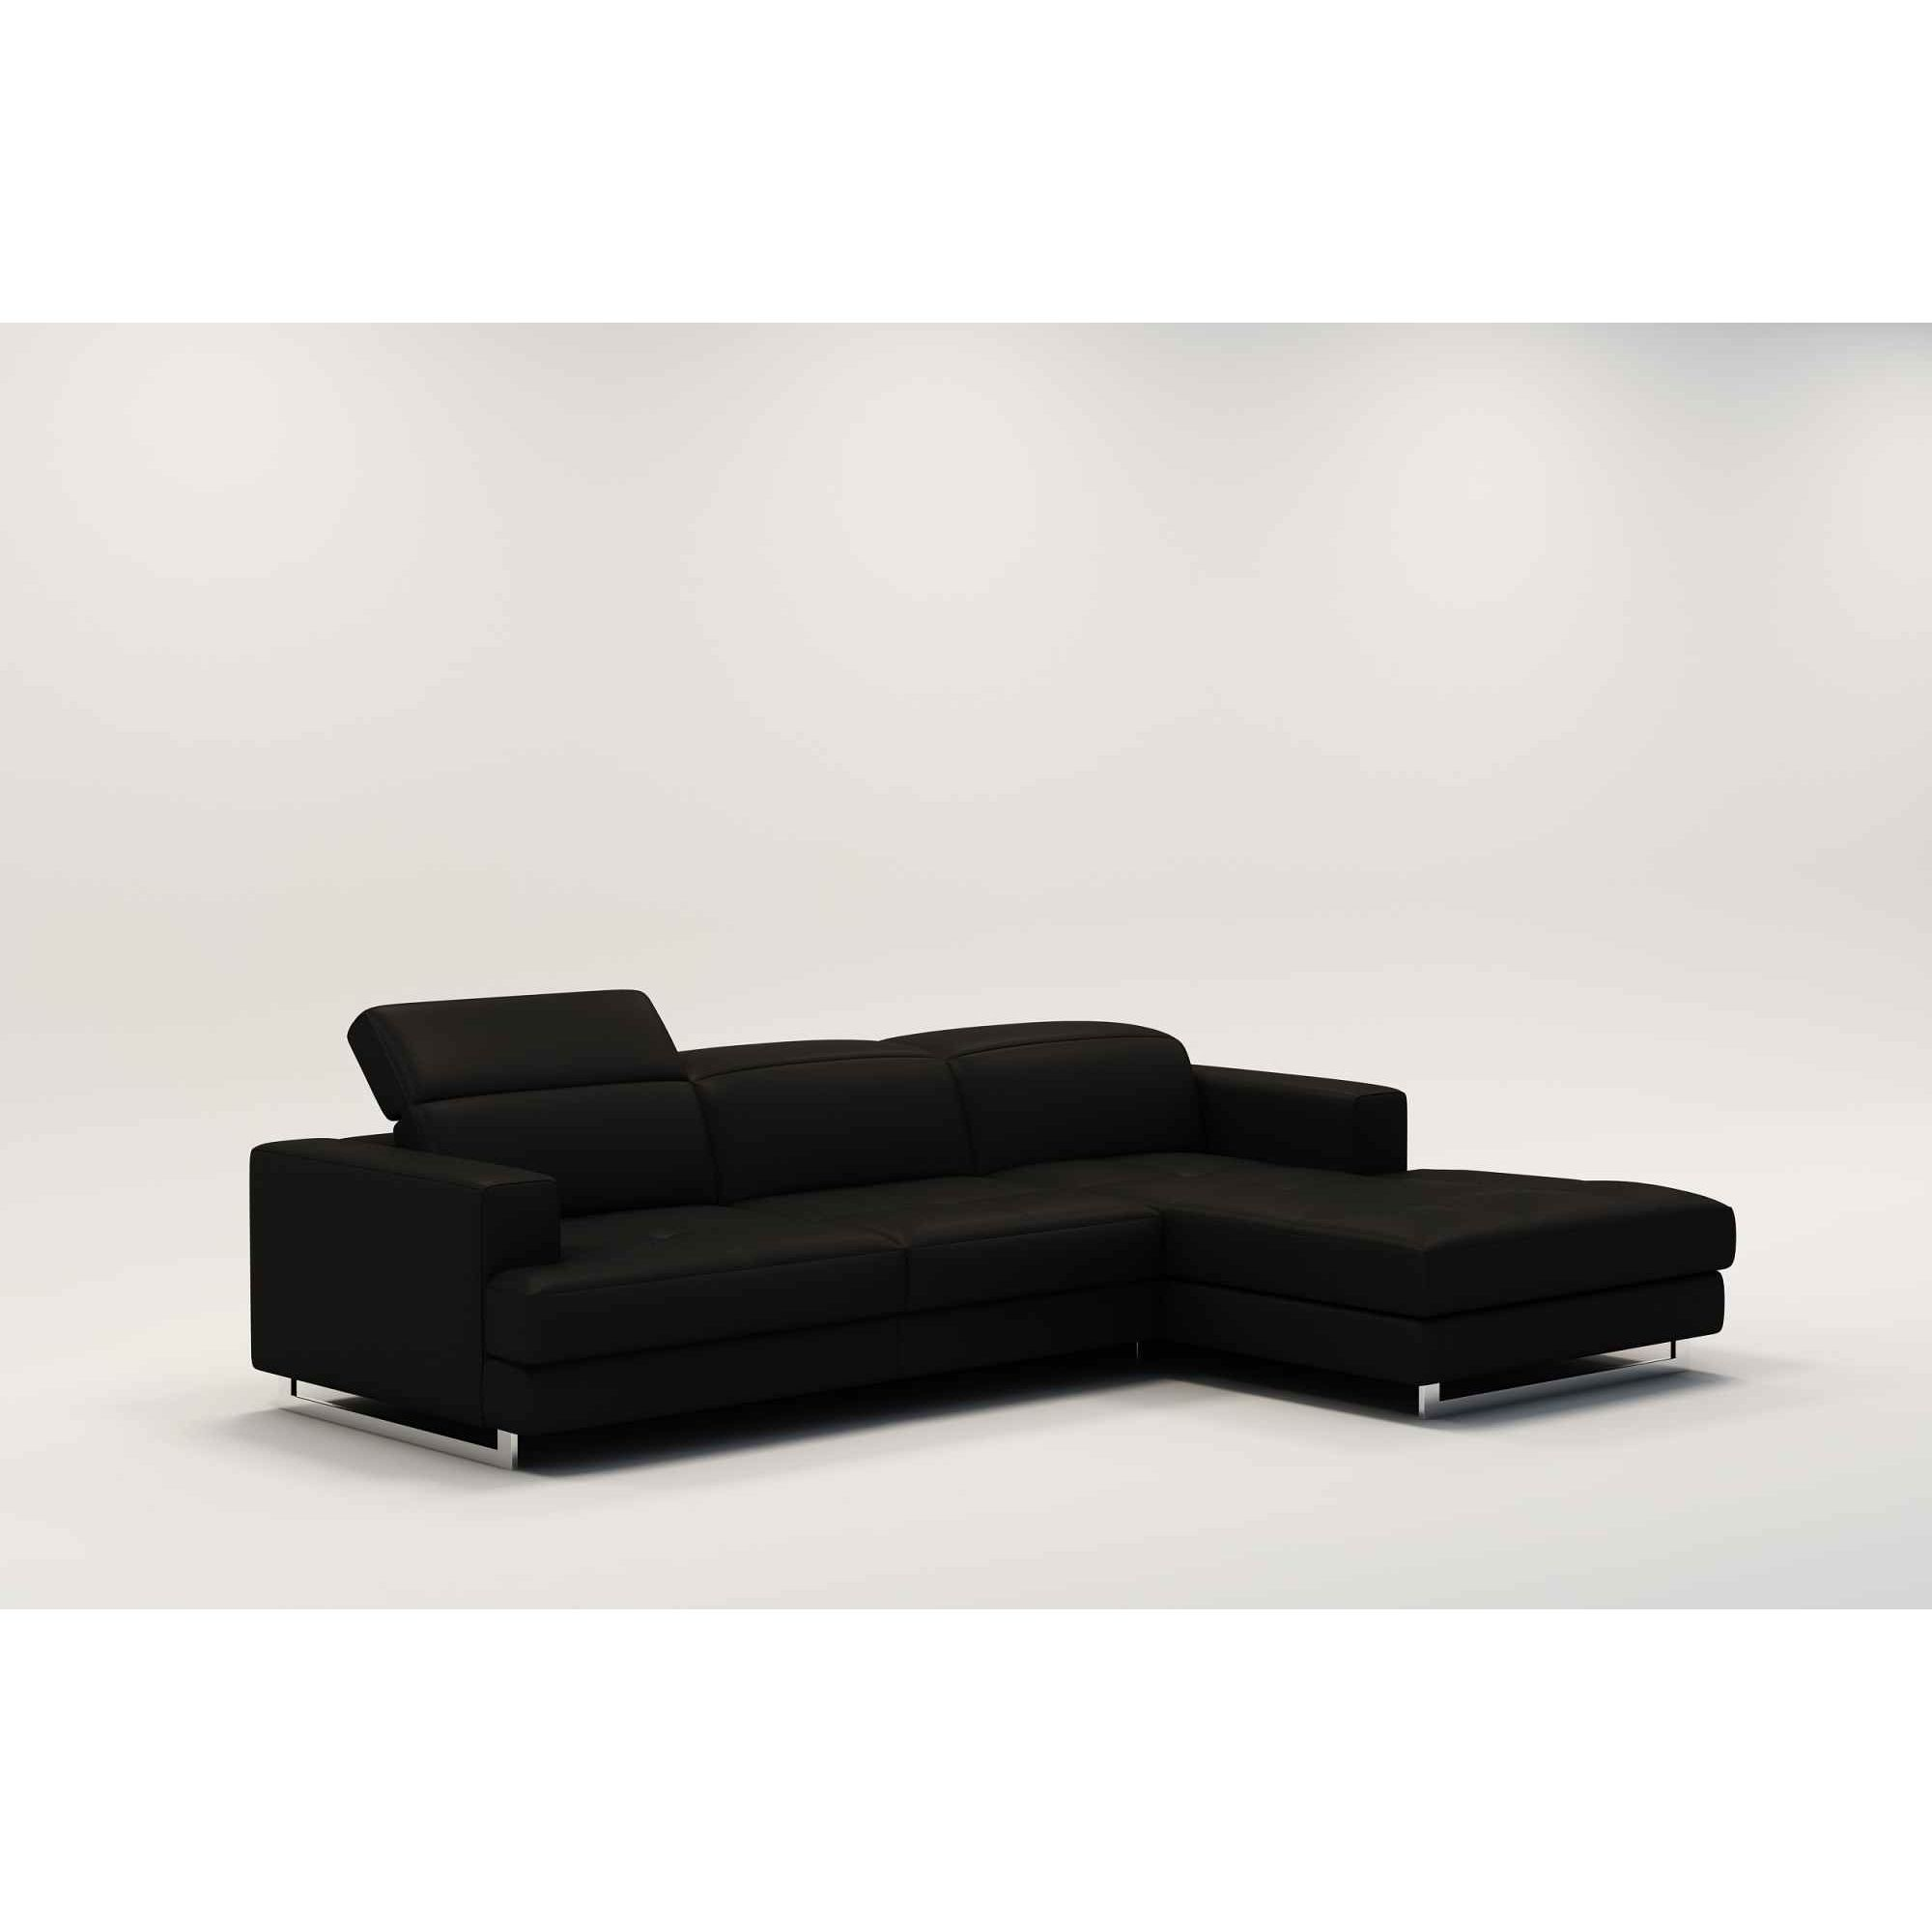 Deco in paris canape d angle design en cuir noir cris for Canape angle cuir design